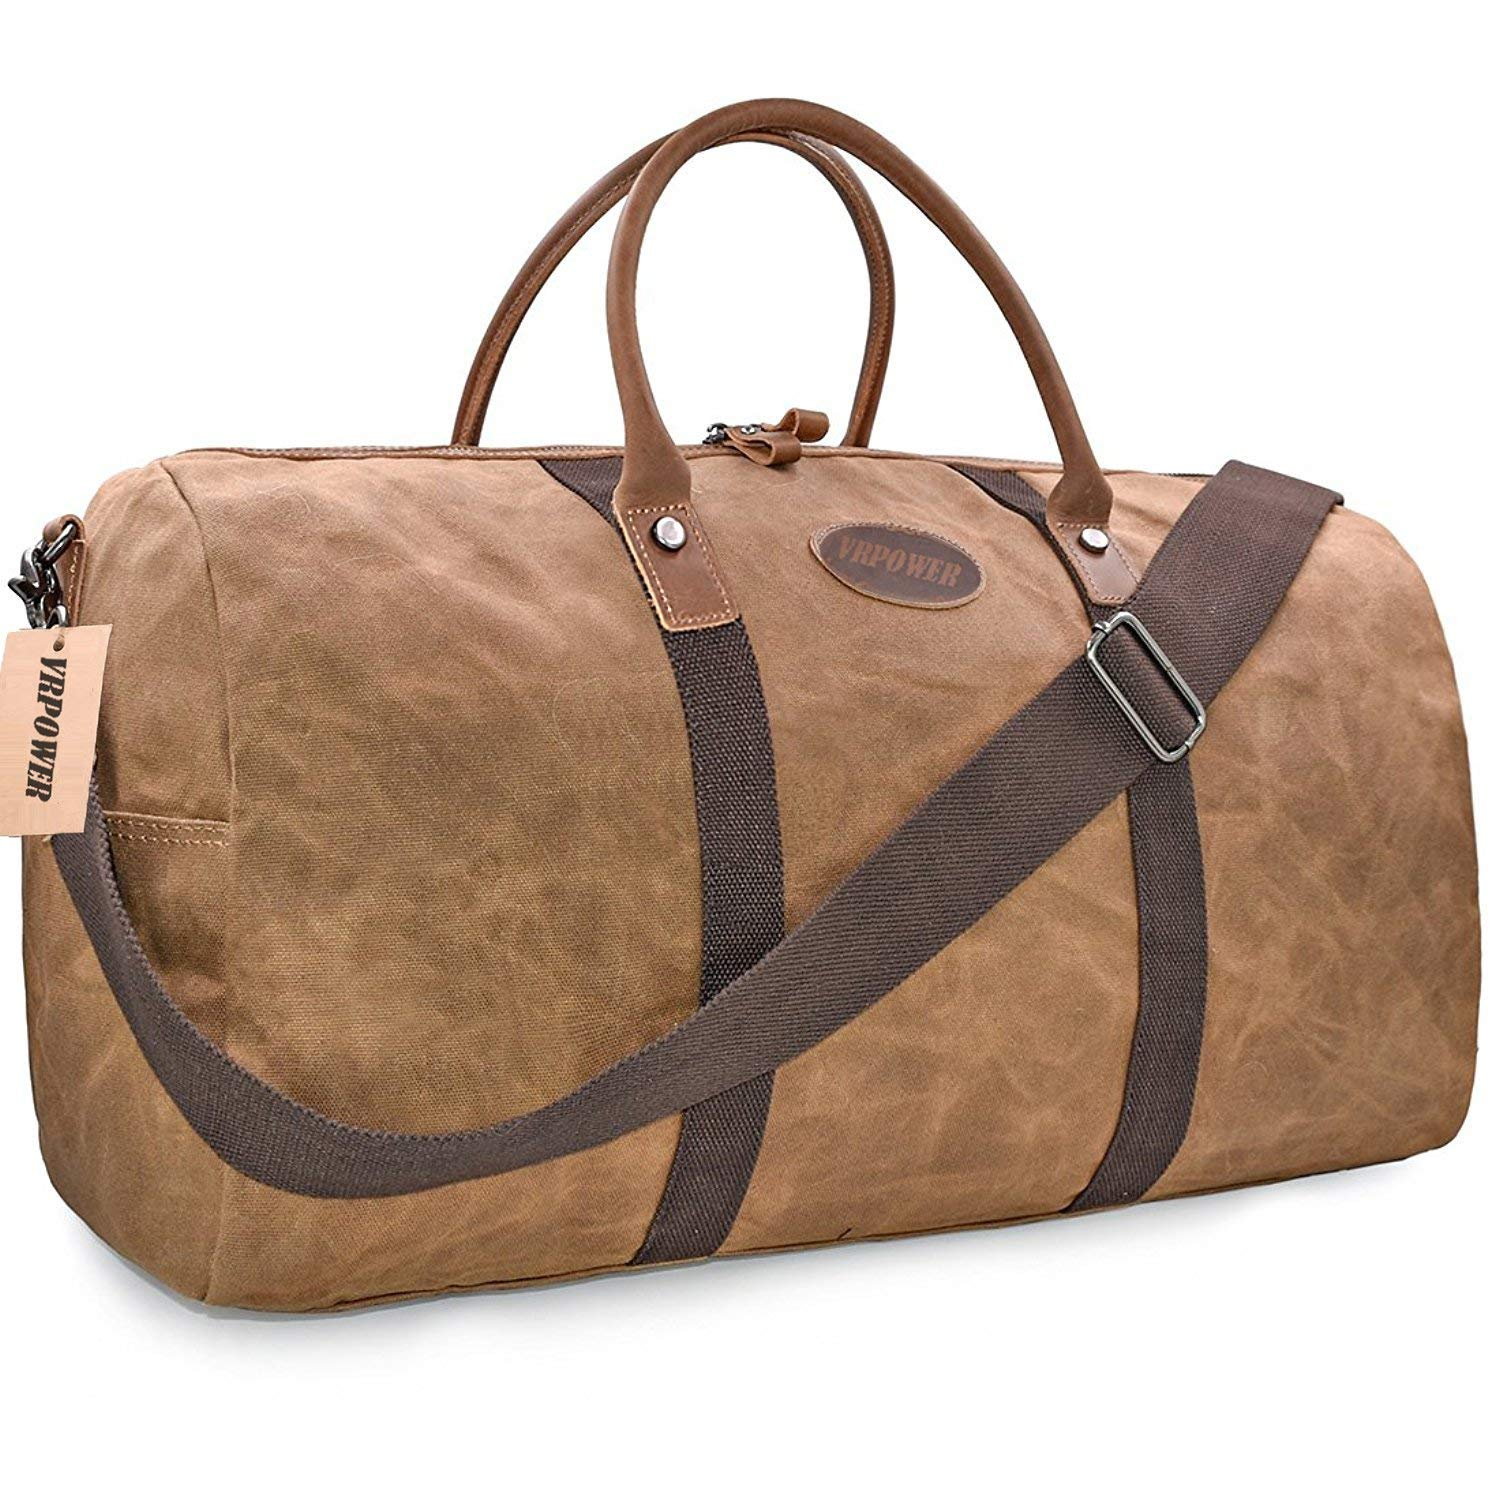 Travel Duffel Bag, Waterproof Canvas Overnight Bag, Leather Weekend Carryon Bag